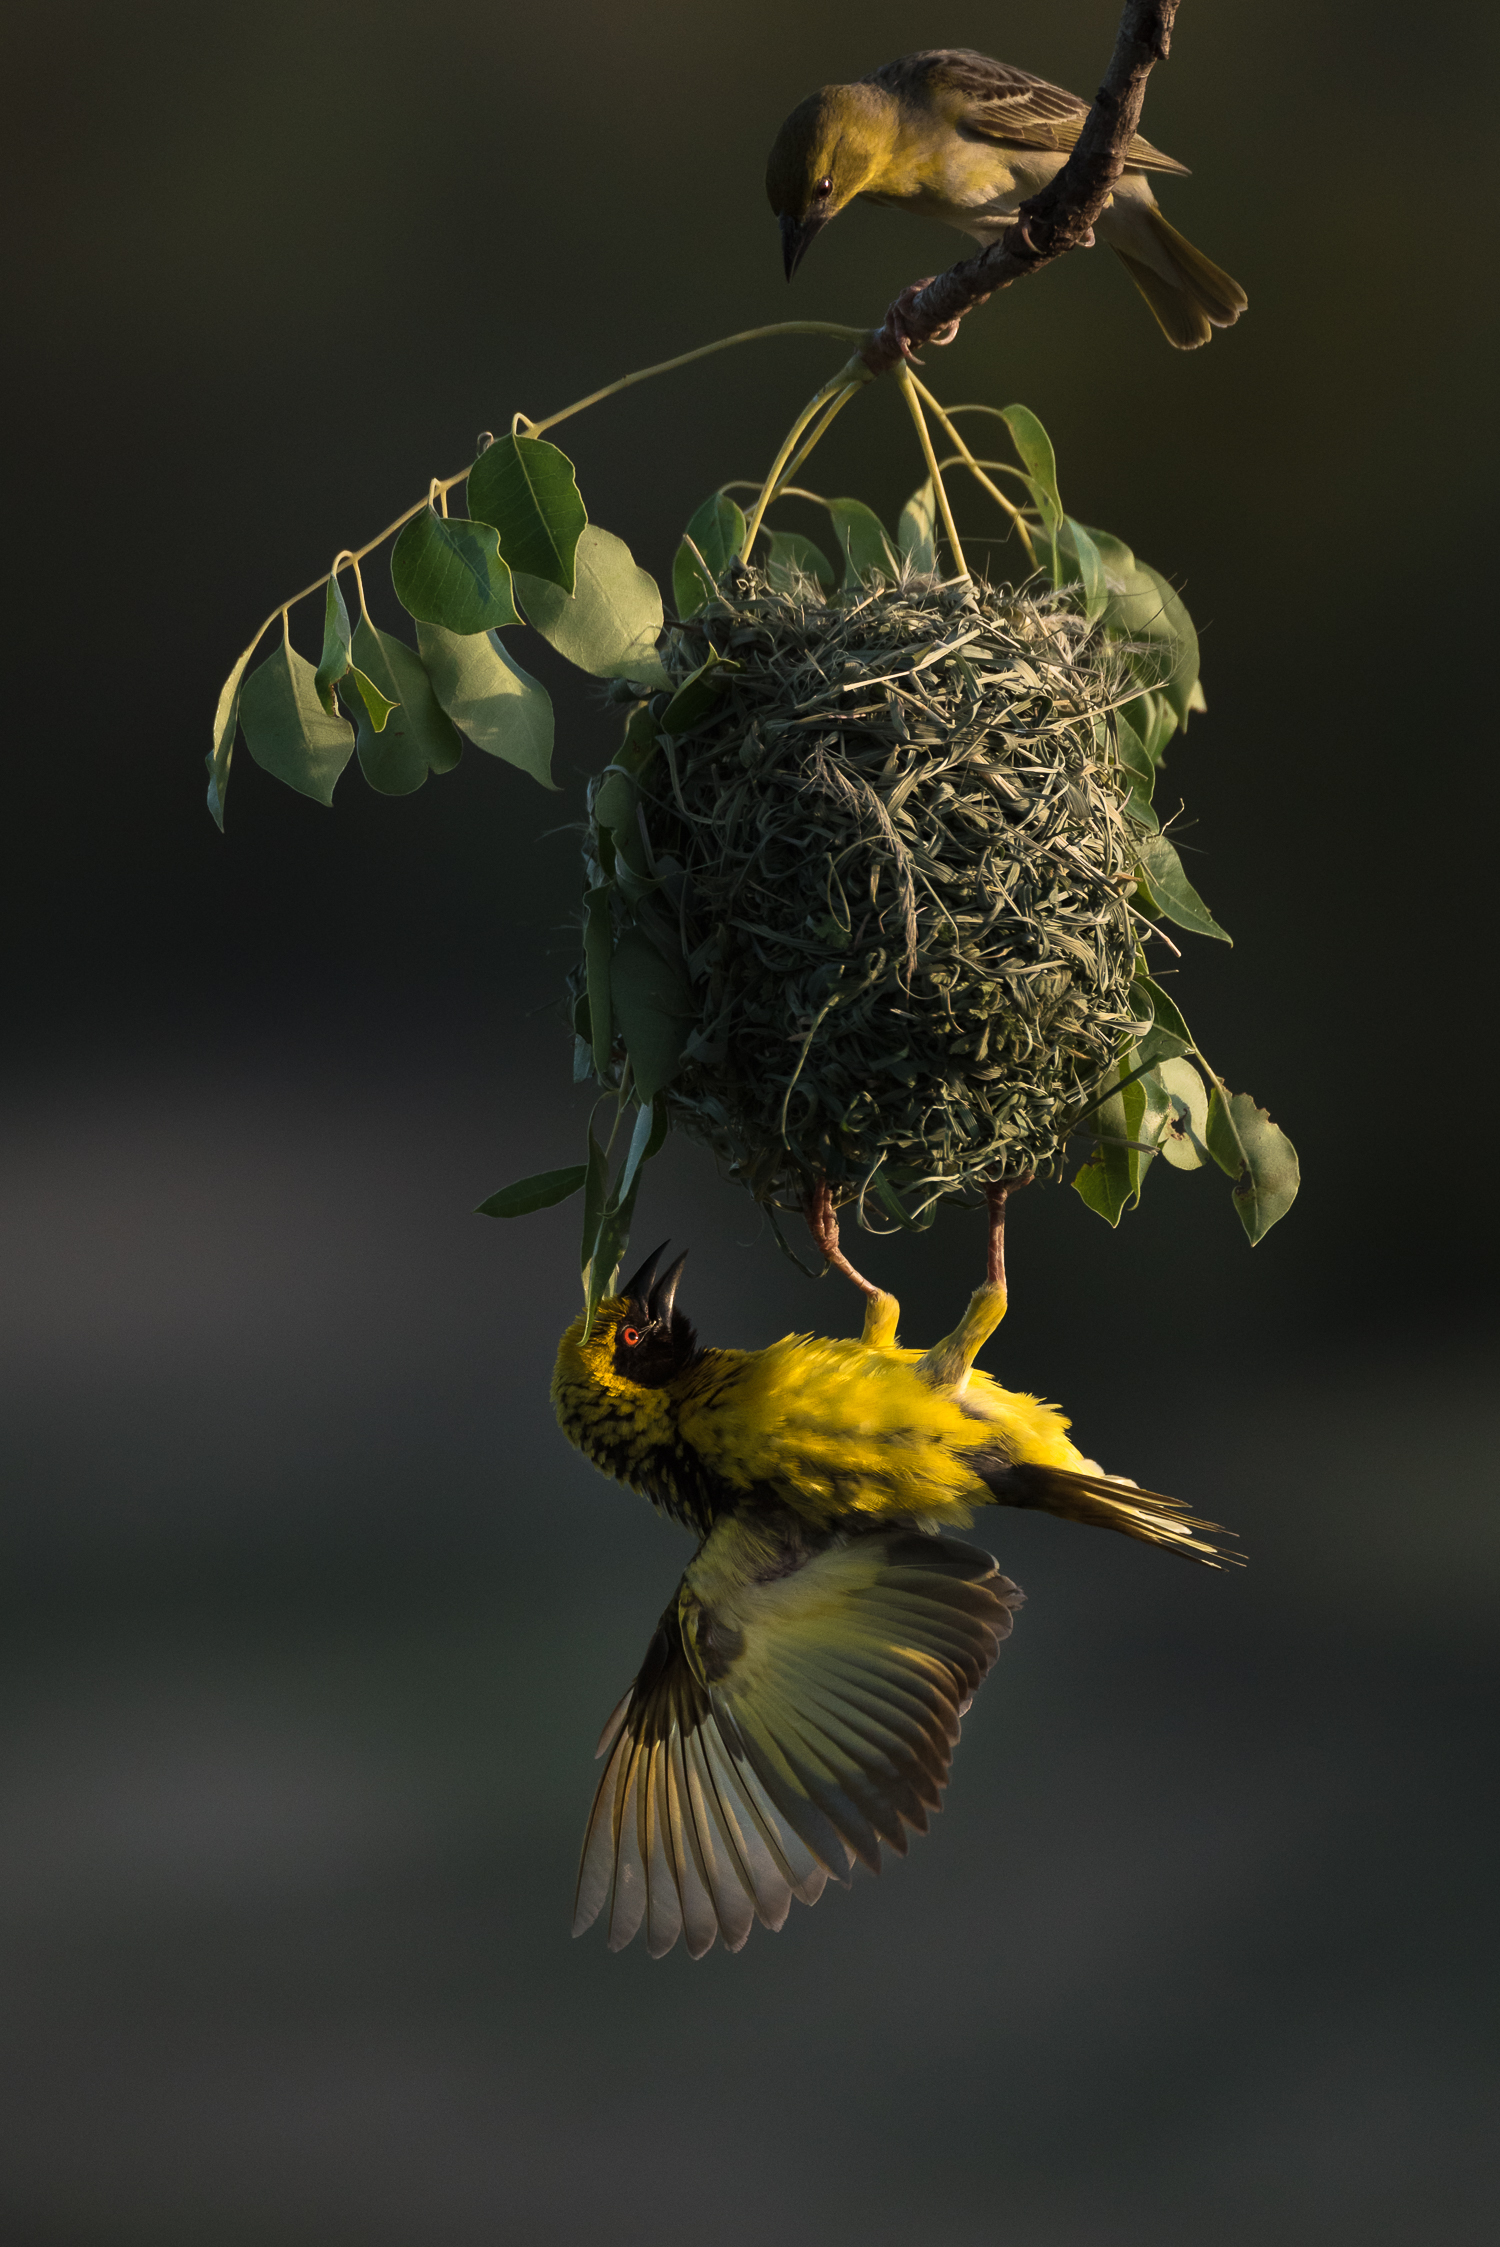 Time for inspection. Hanging from his near perfect creation, a male weaver tries to convince a potential mate THIS is the nest and partner to choose this breeding season.